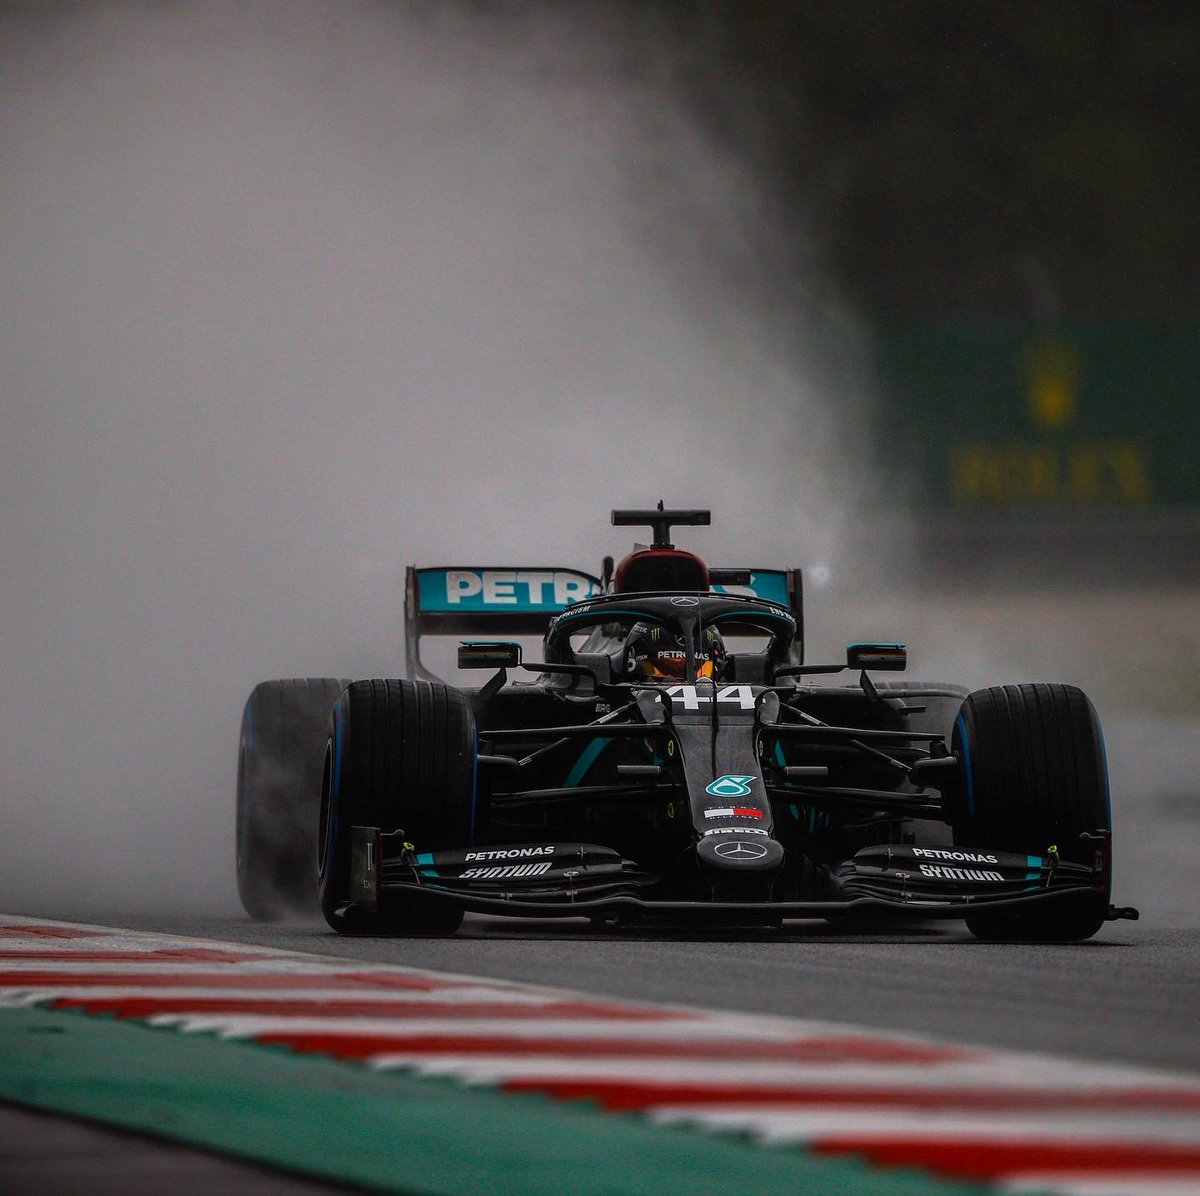 Another 1-2 finish for @MercedesAMGF1 w/@LewisHamilton taking his first 2020 victory & @ValtteriBottas placing second! 🏆  #AustrianGP #WeRaceAsOne #F1 #Formula1 #MonsterEnergy https://t.co/ecd4crRclG